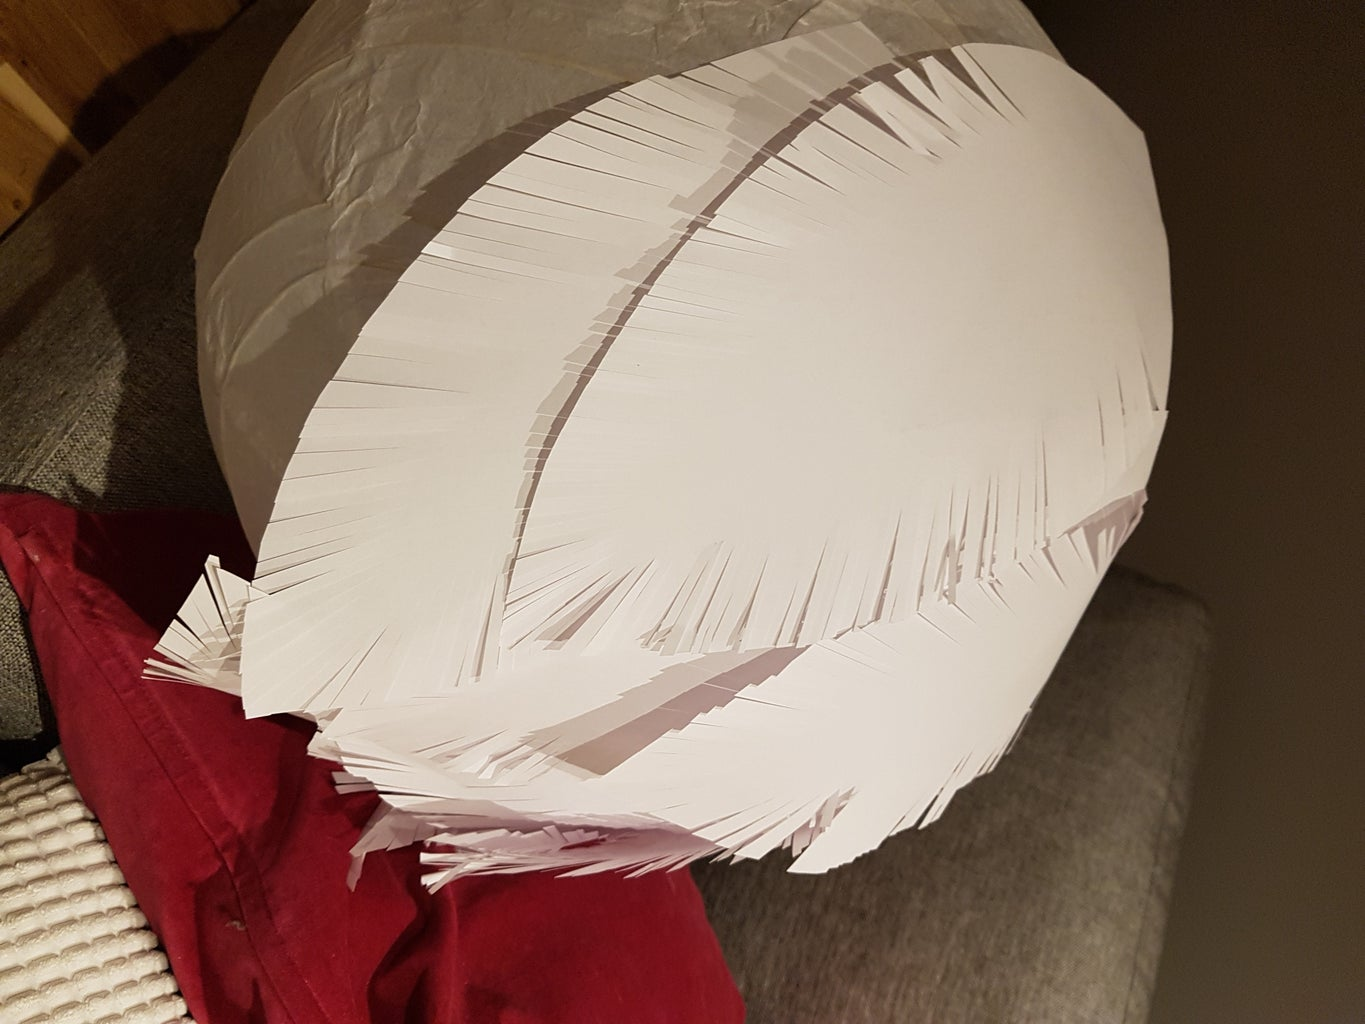 Glue Feathers on to the Lamp